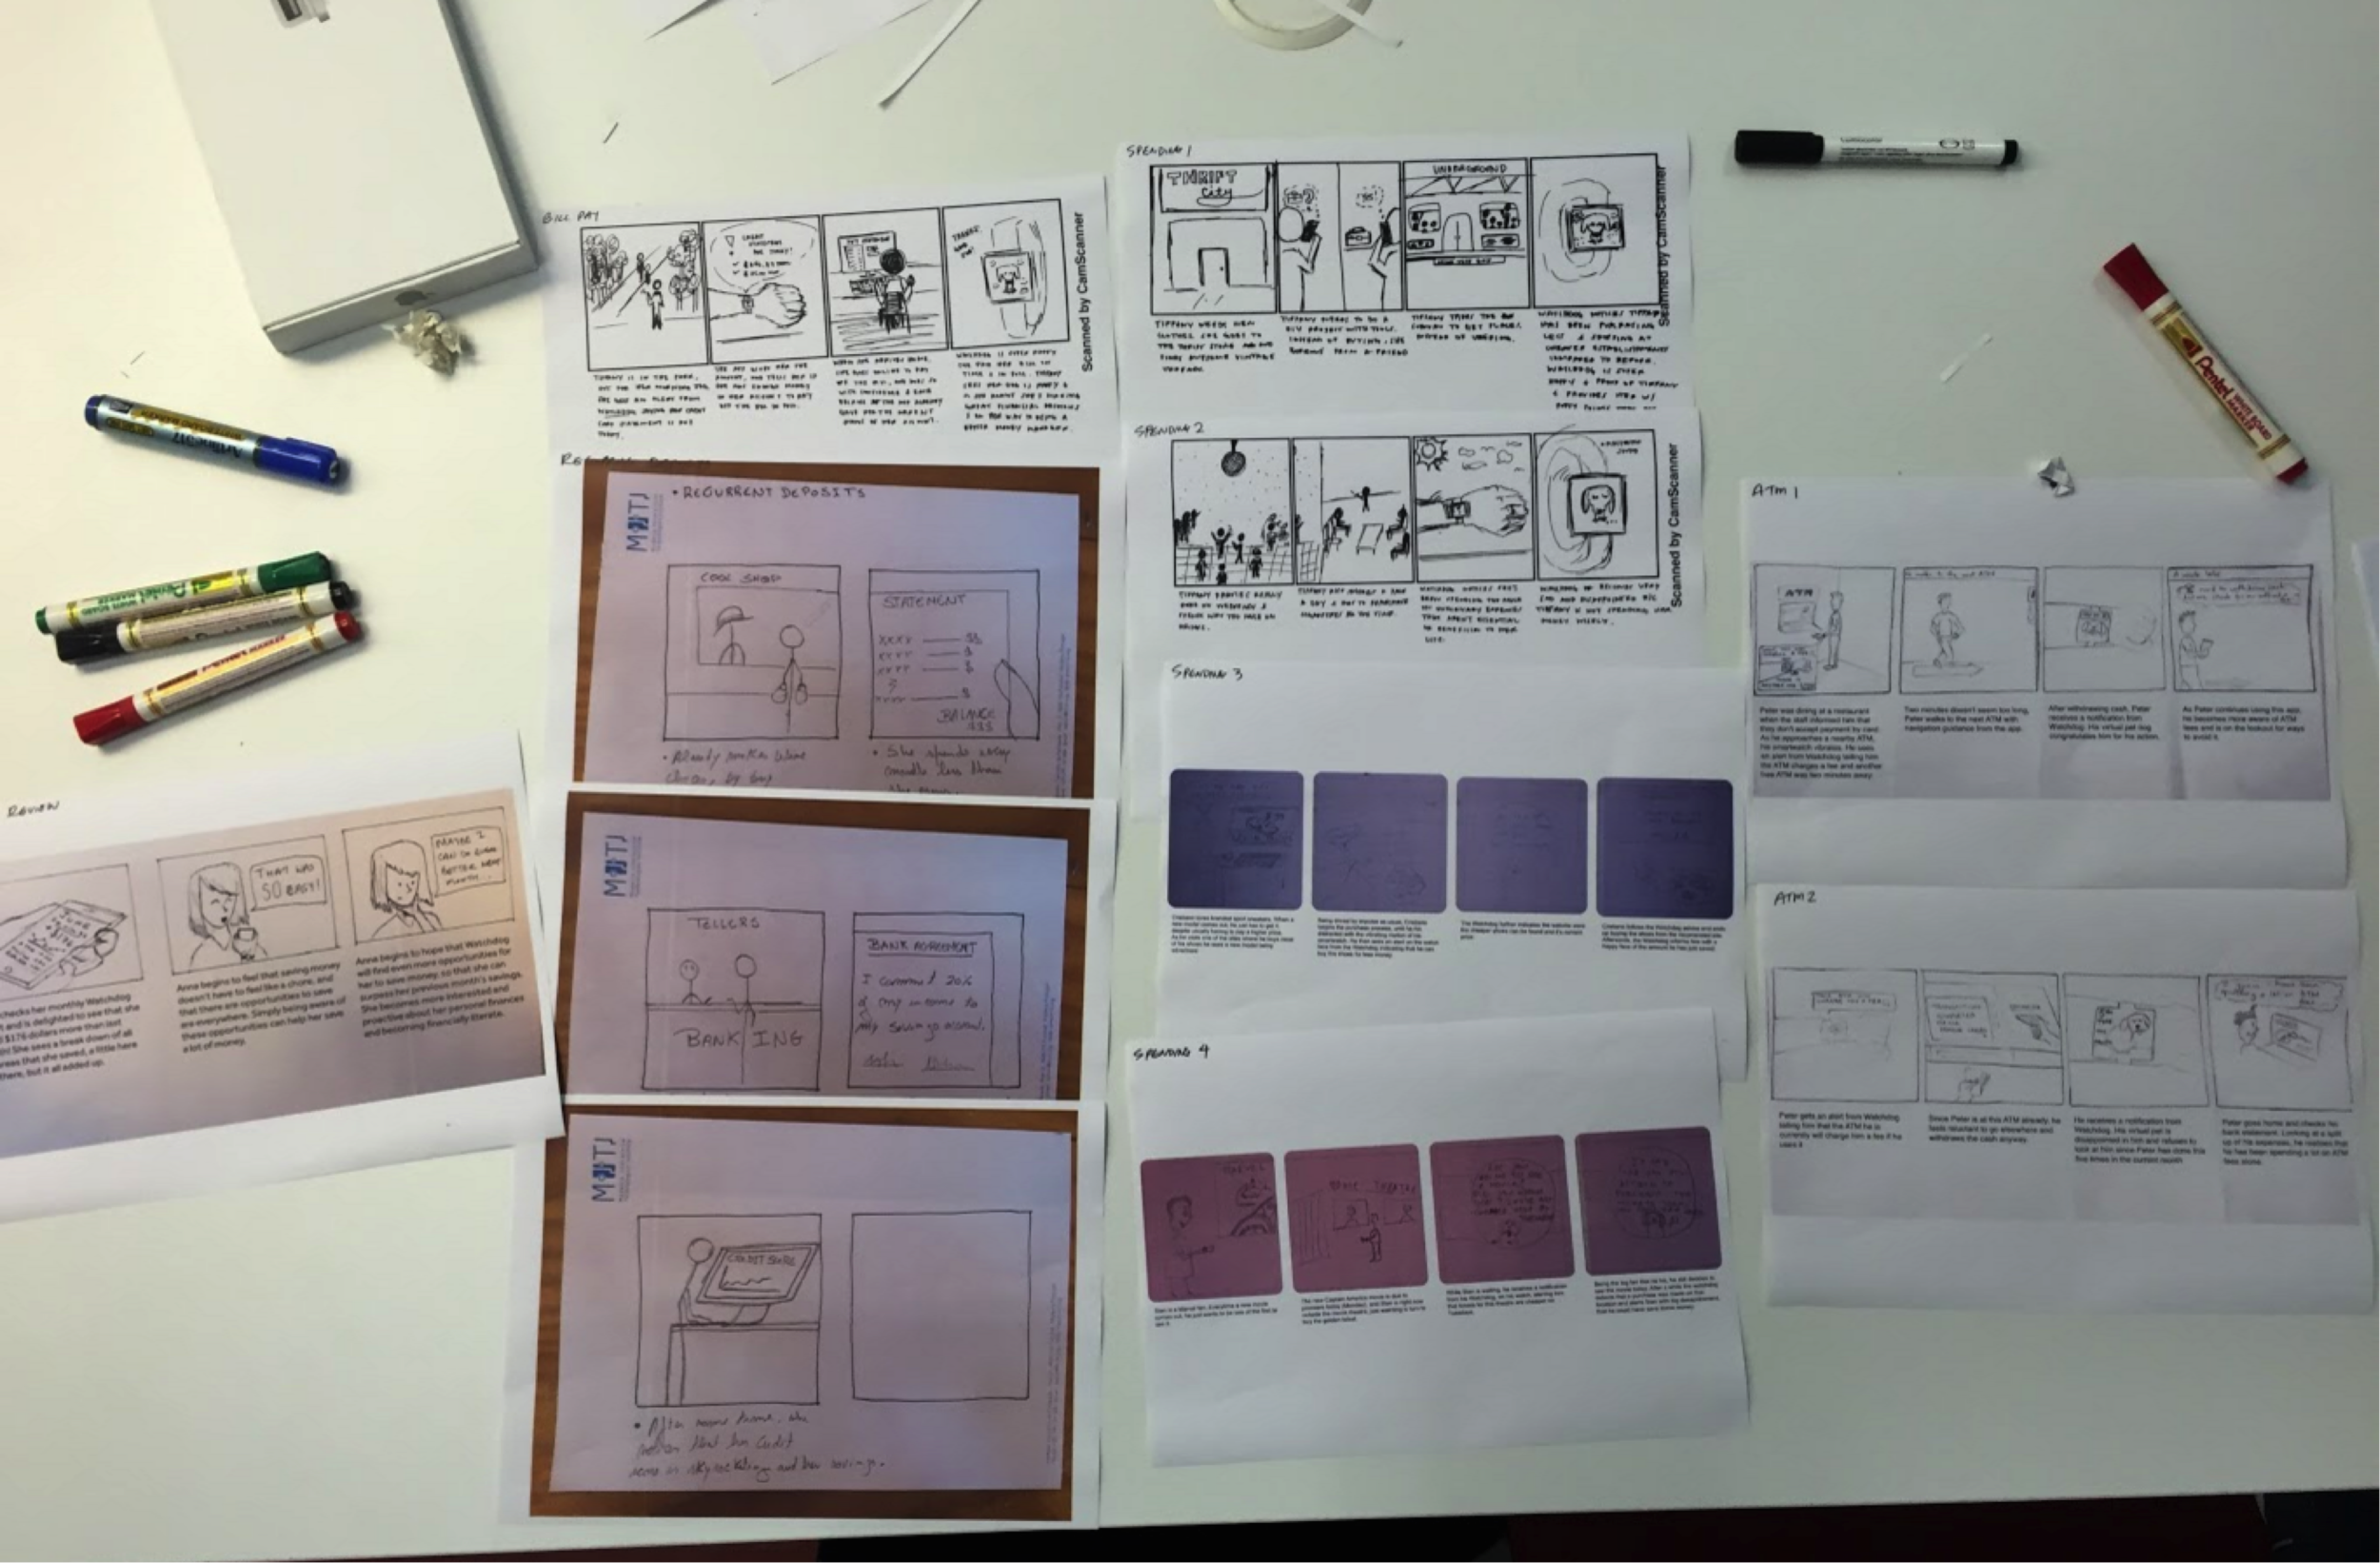 We storyboarded our ideas and asked users which they preferred